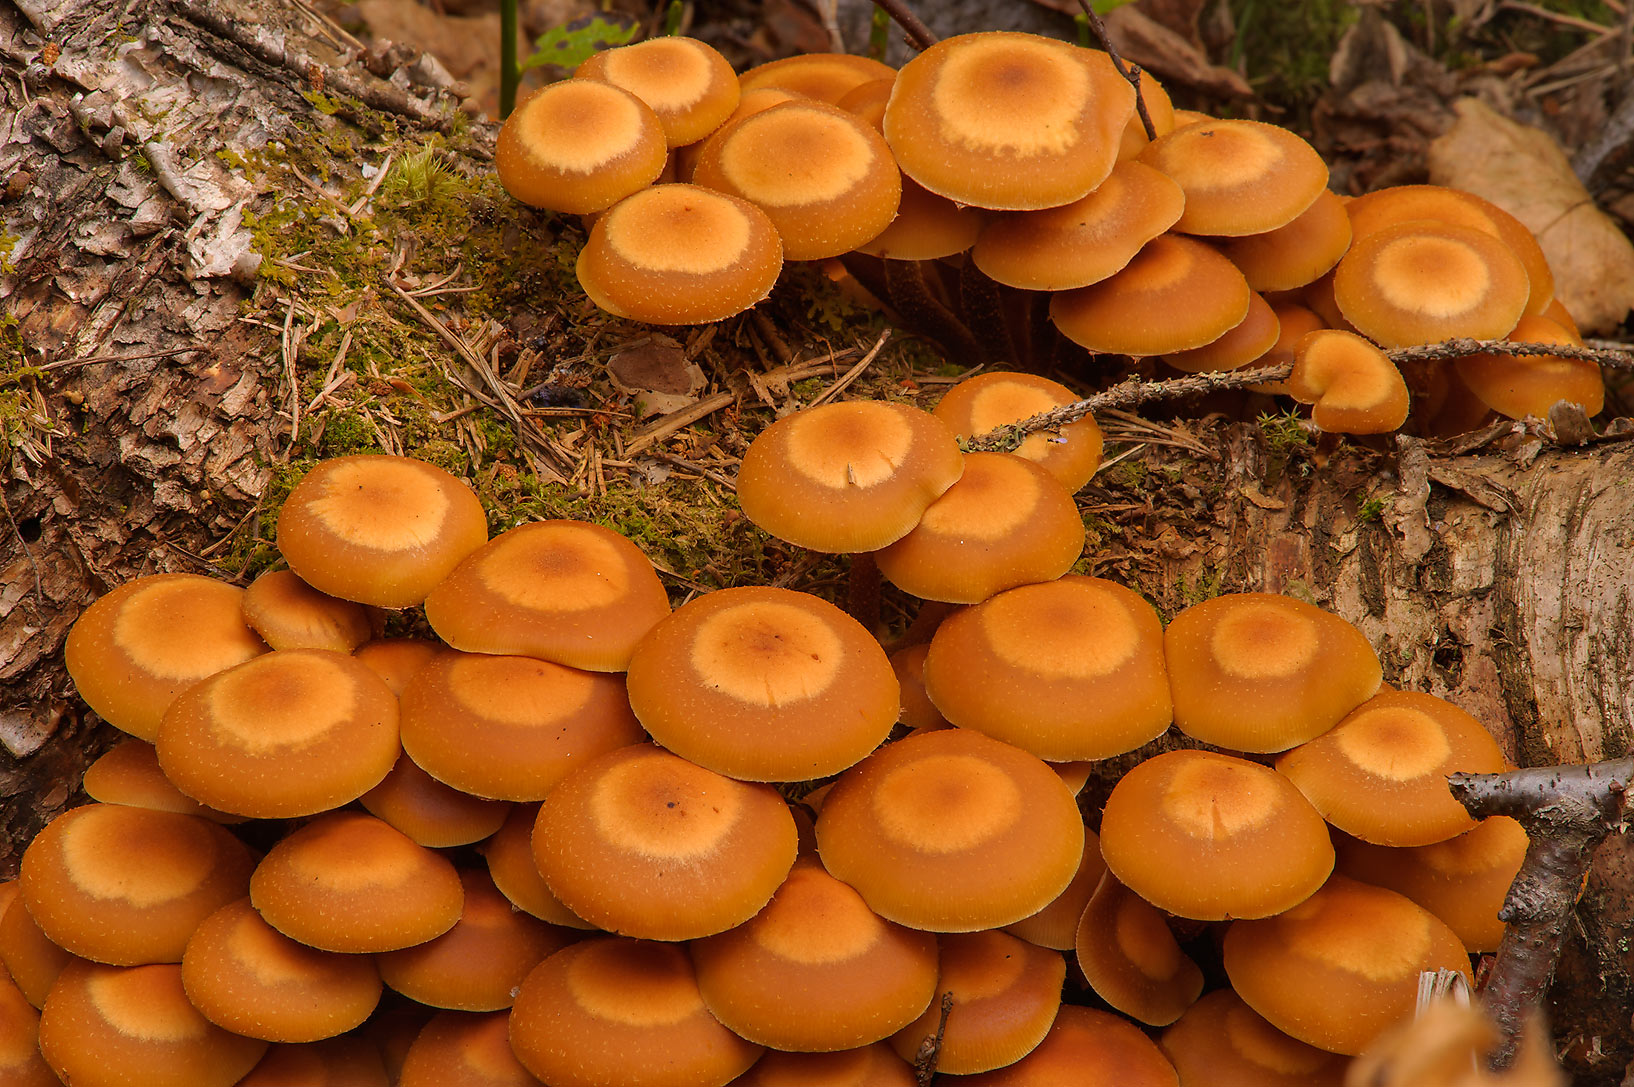 Masses of Sheathed Woodtuft mushrooms...miles north from St.Petersburg. Russia